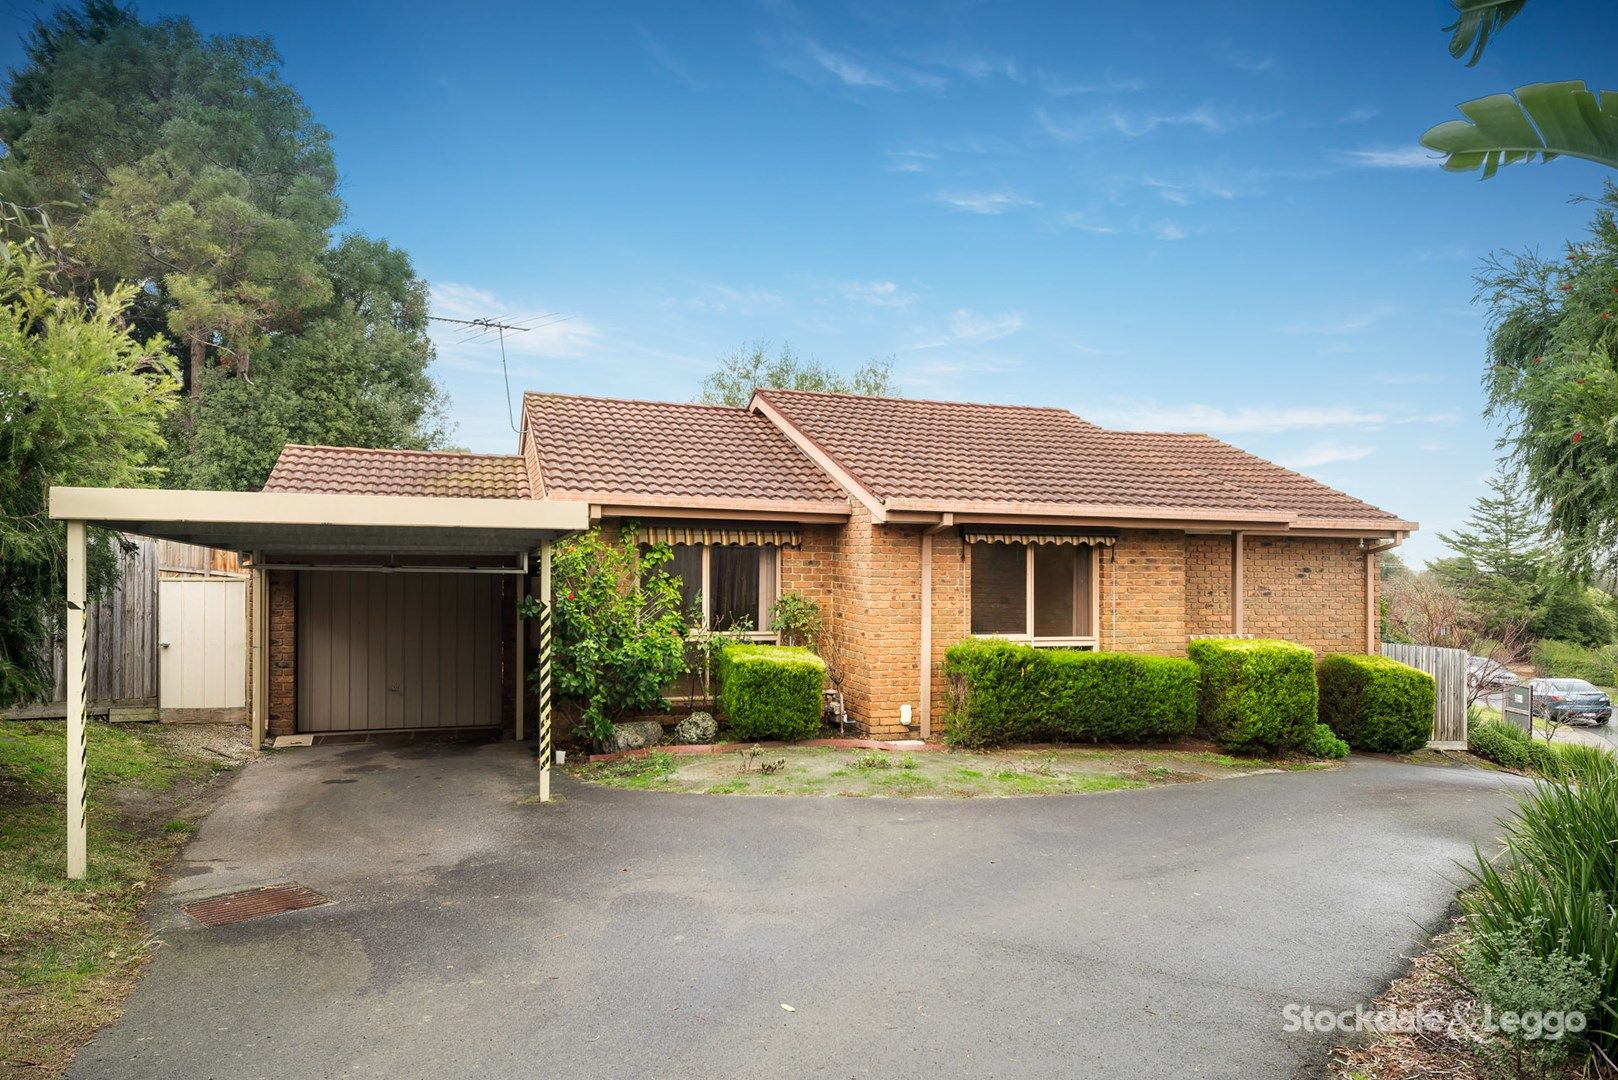 1/5 County Close, Wheelers Hill VIC 3150, Image 0